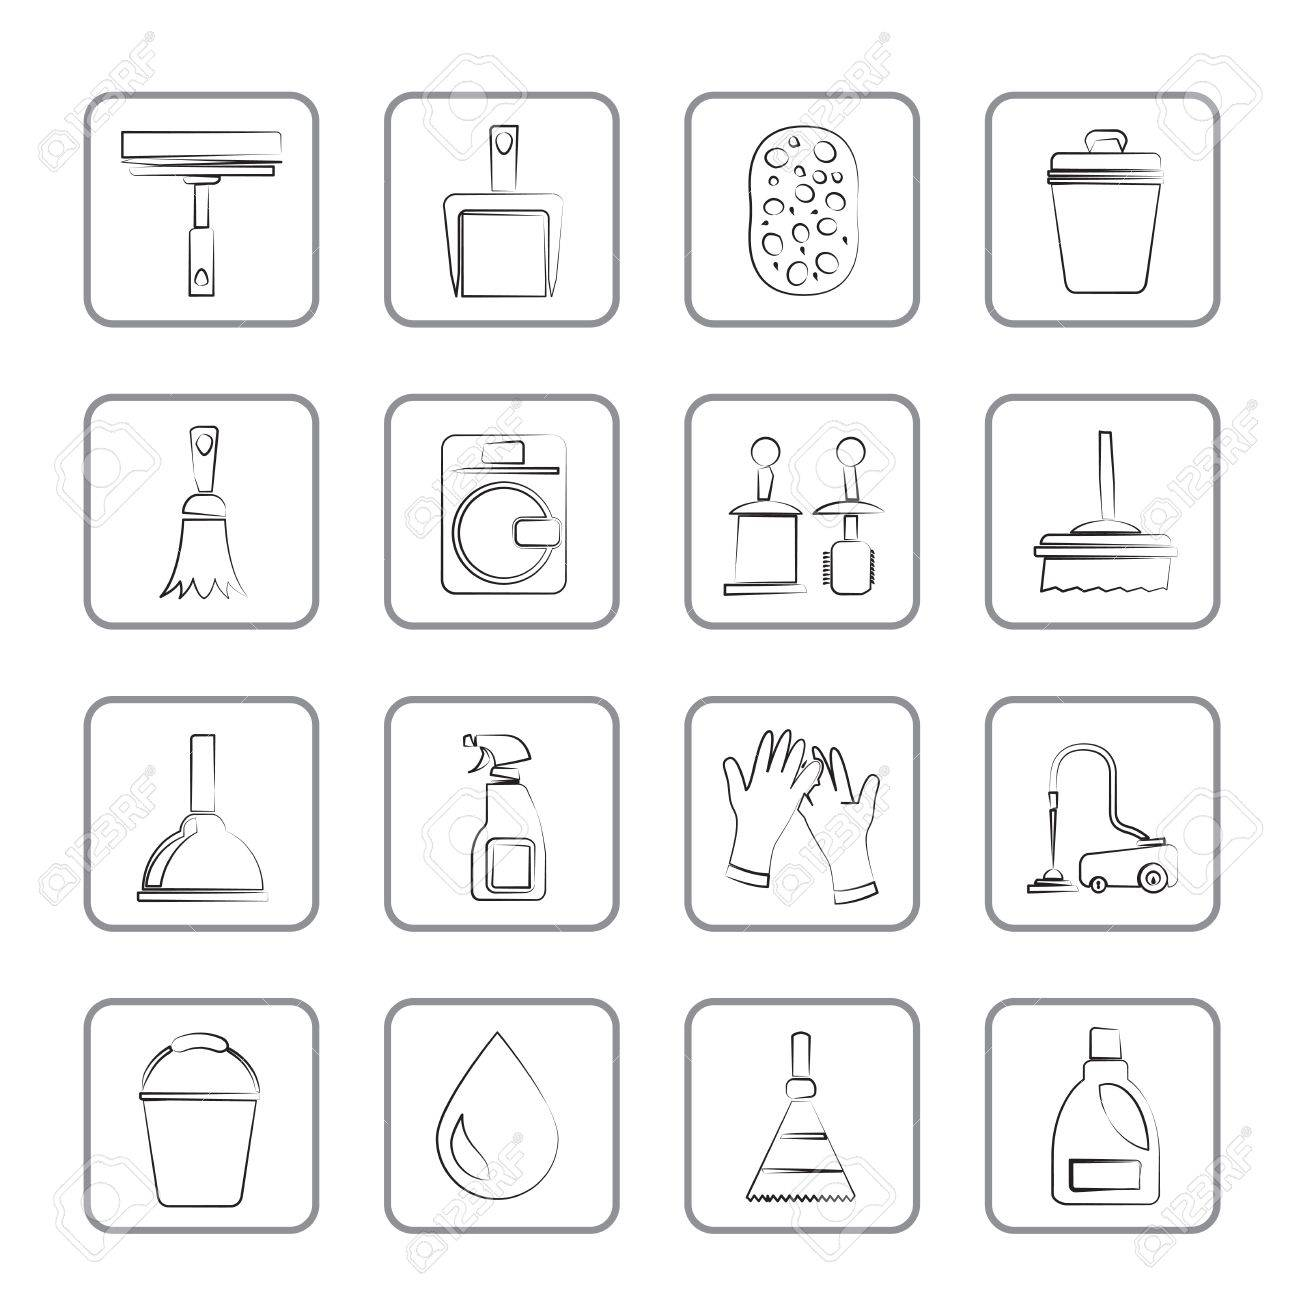 Cleaning and hygiene icons - vector icon set Stock Vector - 14671676